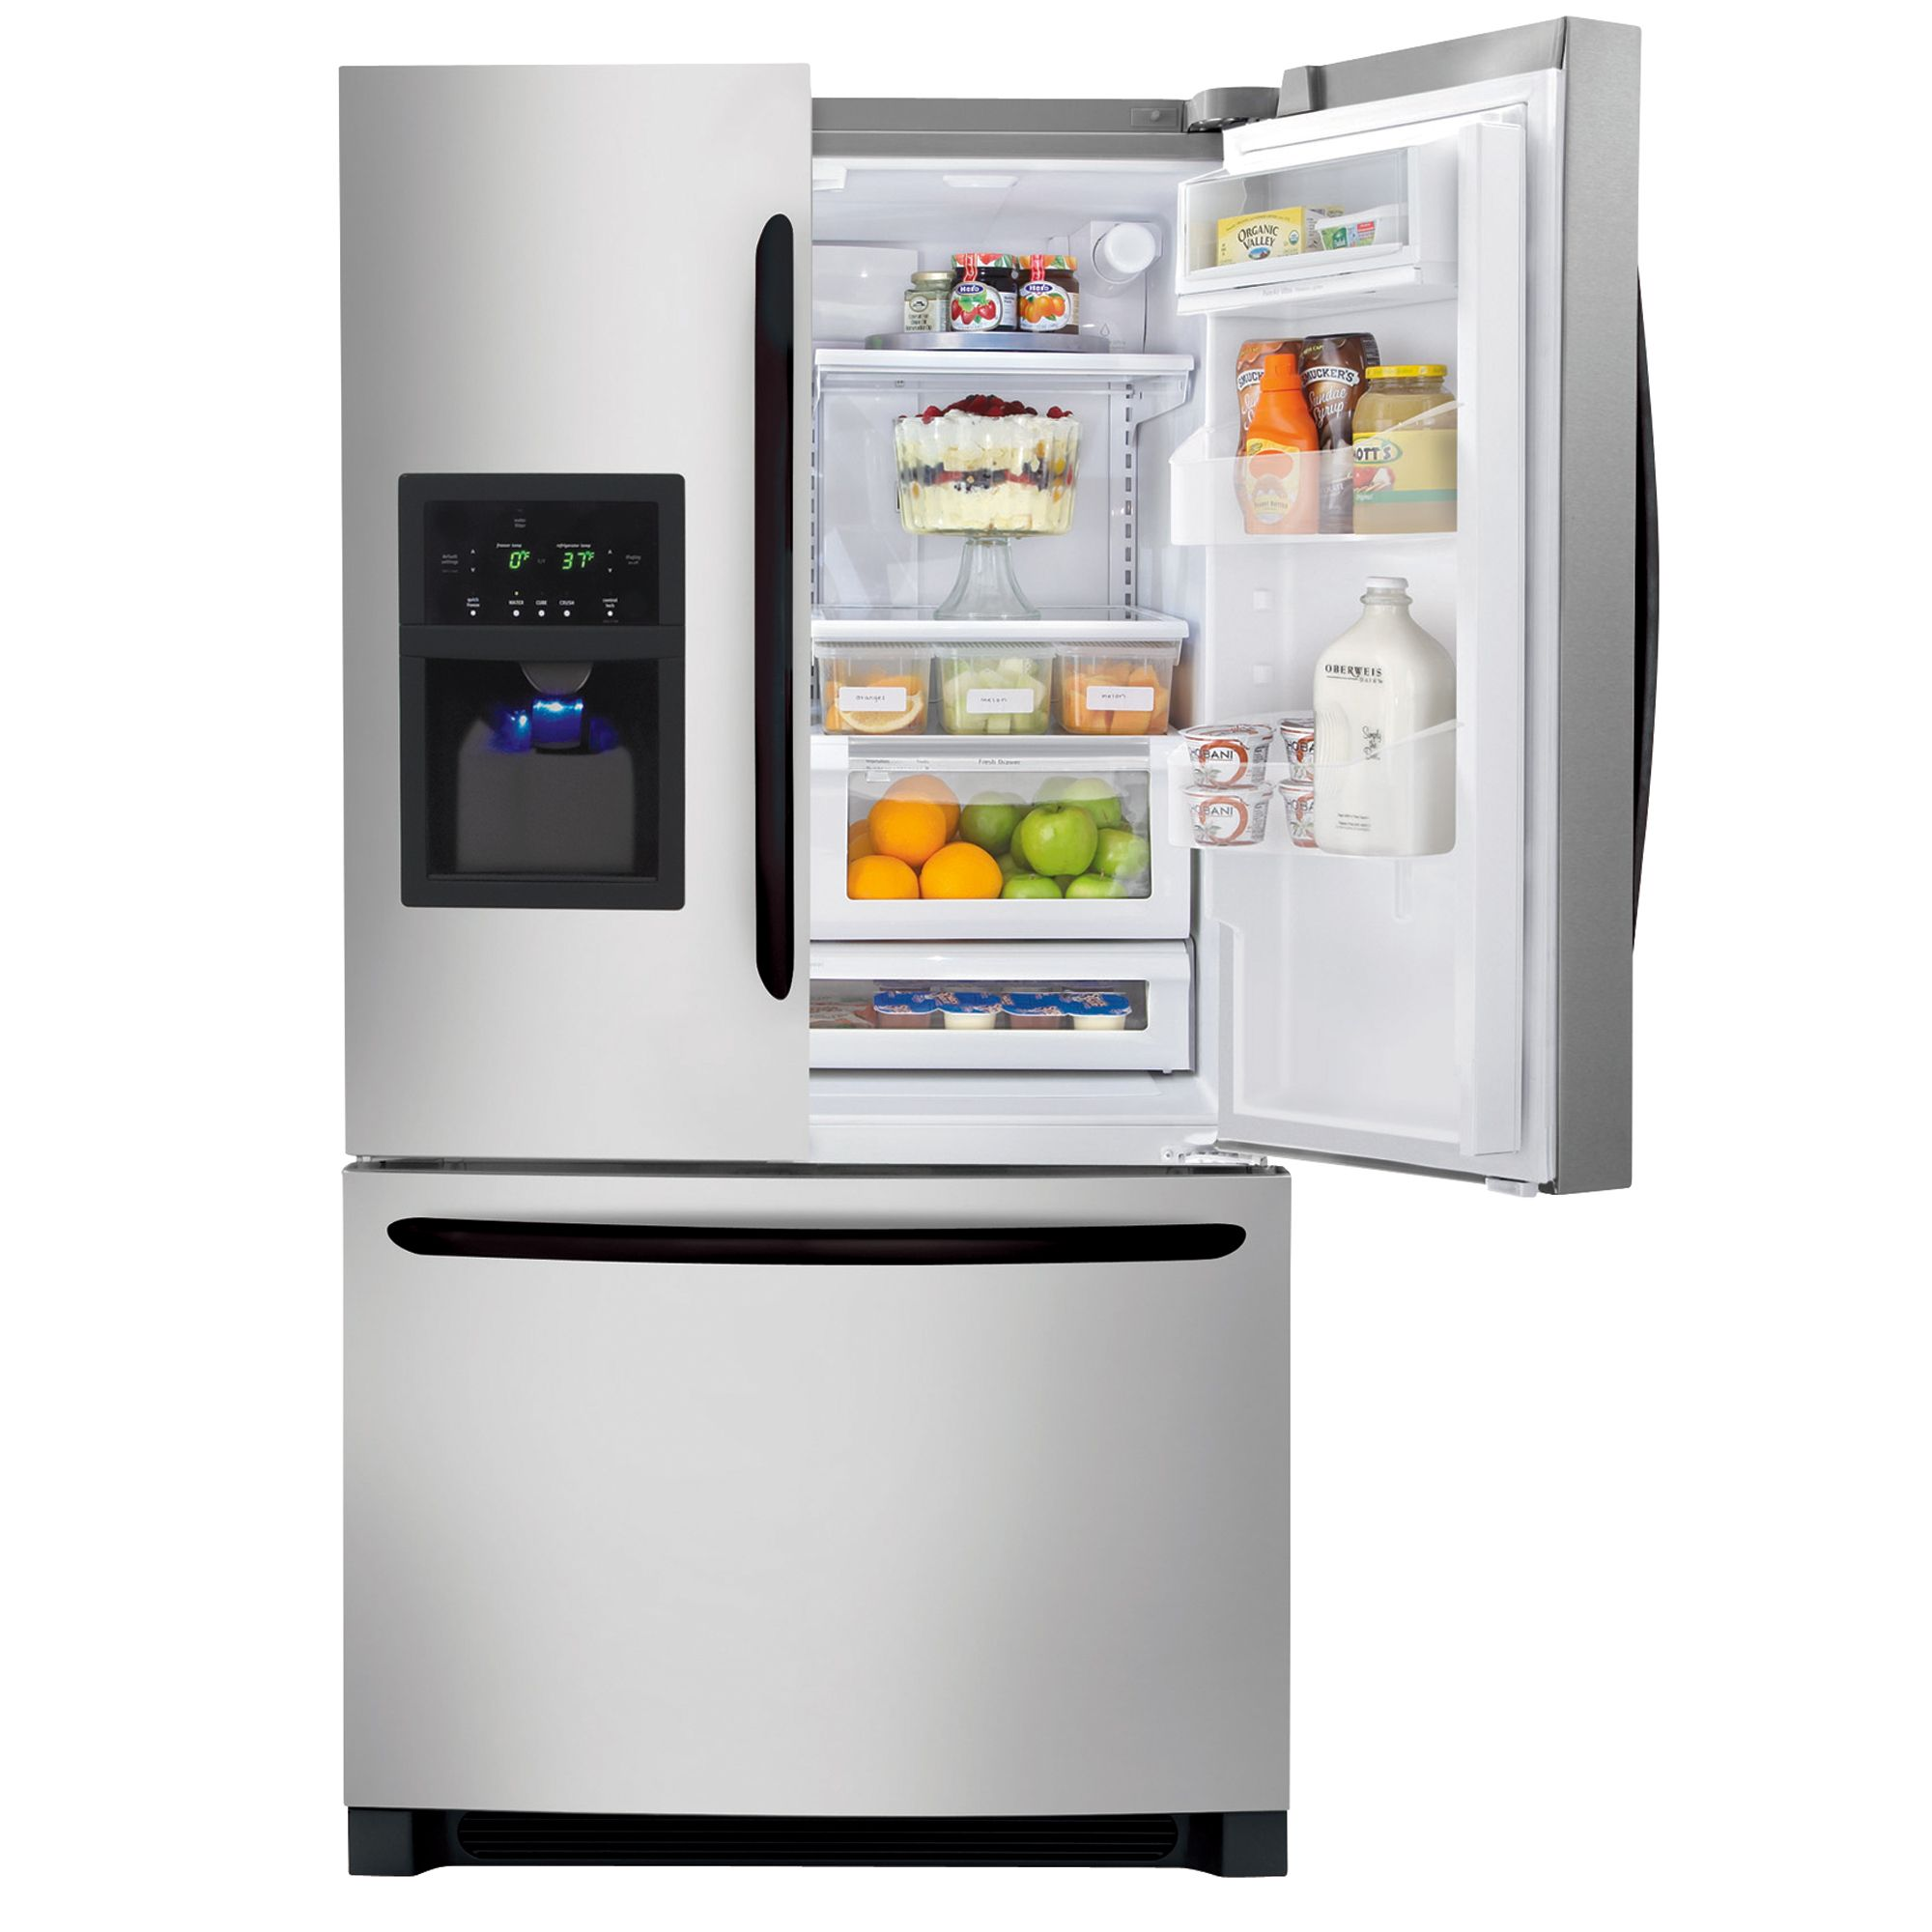 Frigidaire 27.8 cu. ft. French-Door Bottom-Freezer Refrigerator (FGHB2844L)